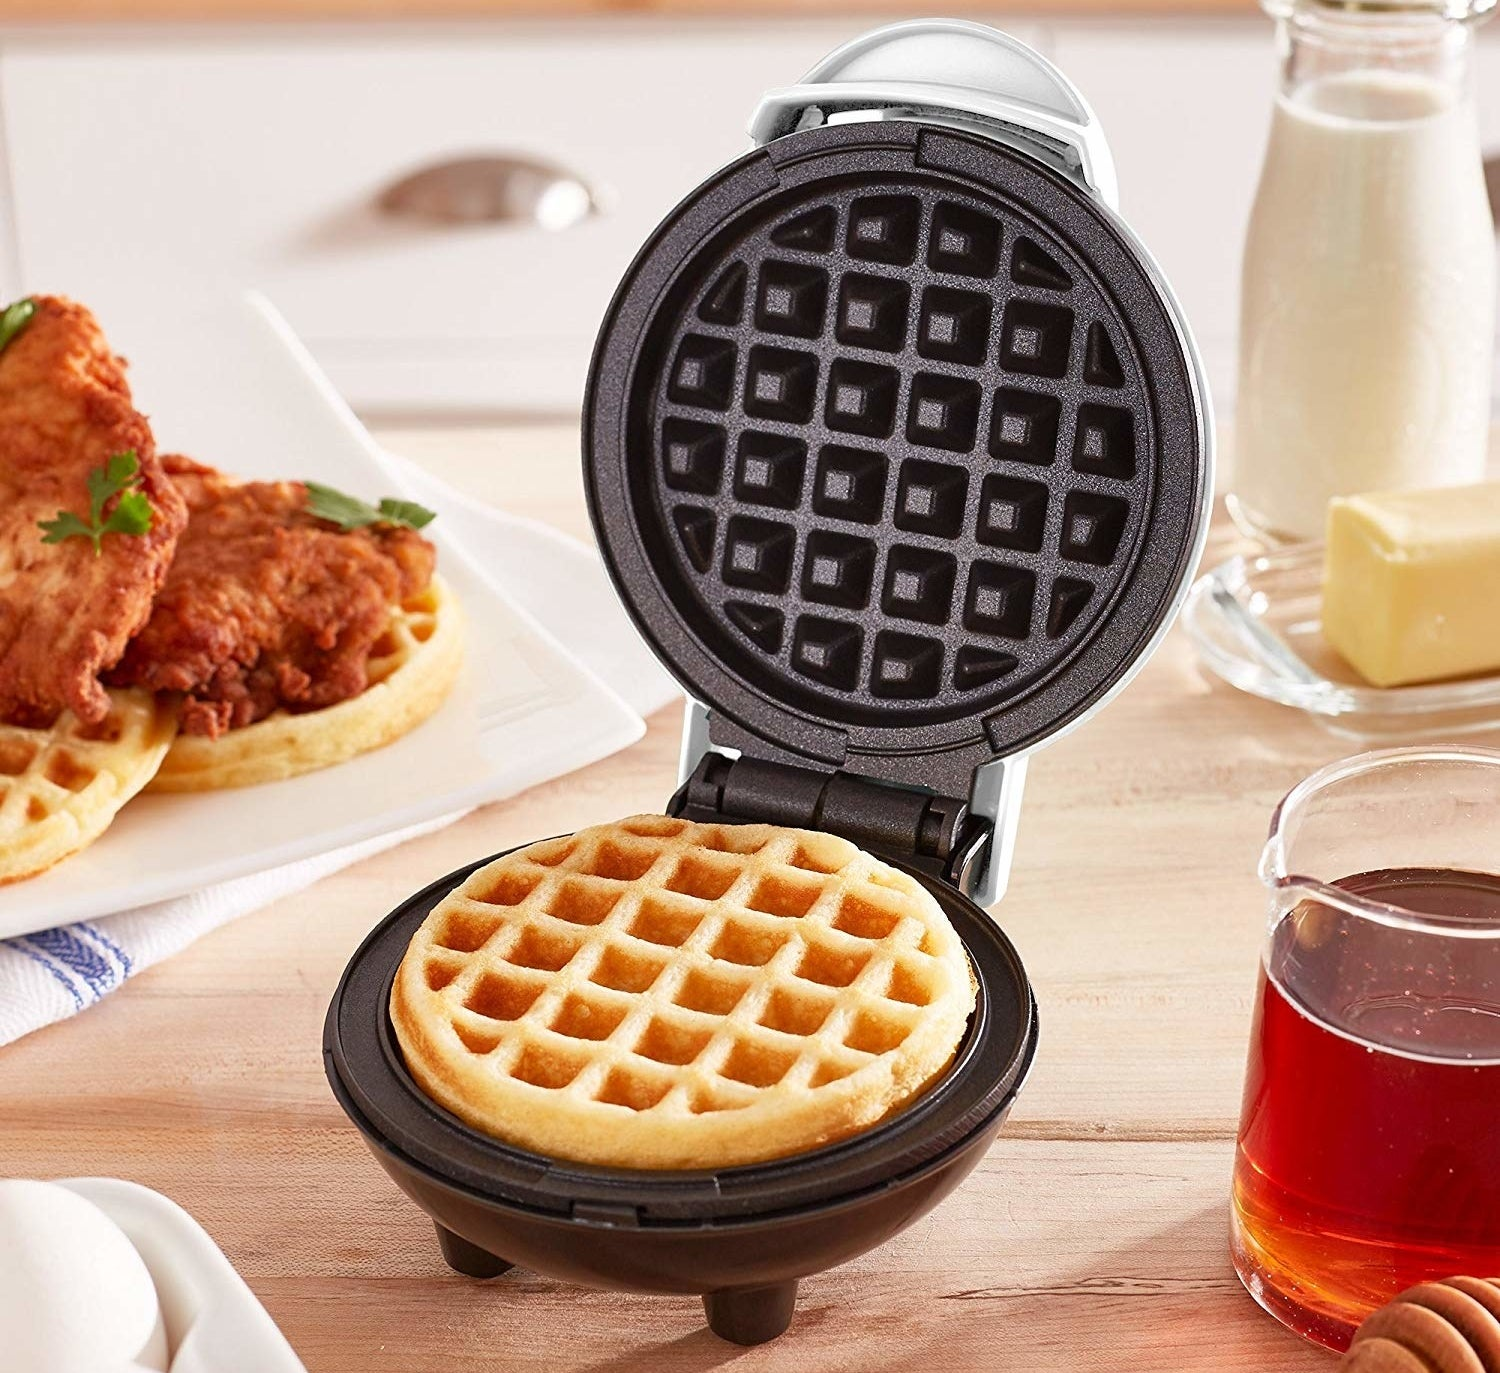 """This weighs just over 1 lb., heats up in minutes, and has a non-stick surface for even cooking. Promising review: """"This little waffle maker is so perfect! It makes the perfect-sized waffles, the smaller ones you would get out of the freezer section at the grocery store. I just buy some mix and make a huge batch to freeze for my son, and he just pops them in the toaster. I also made a bunch to make waffle sandwiches for my daughter. Healthier and a lot cheaper. I make those and freeze them as well so I can just pop them in the microwave."""" —SnoopyHJGet it from Amazon for $9.99 (originally $14.99, available in seven colors)."""